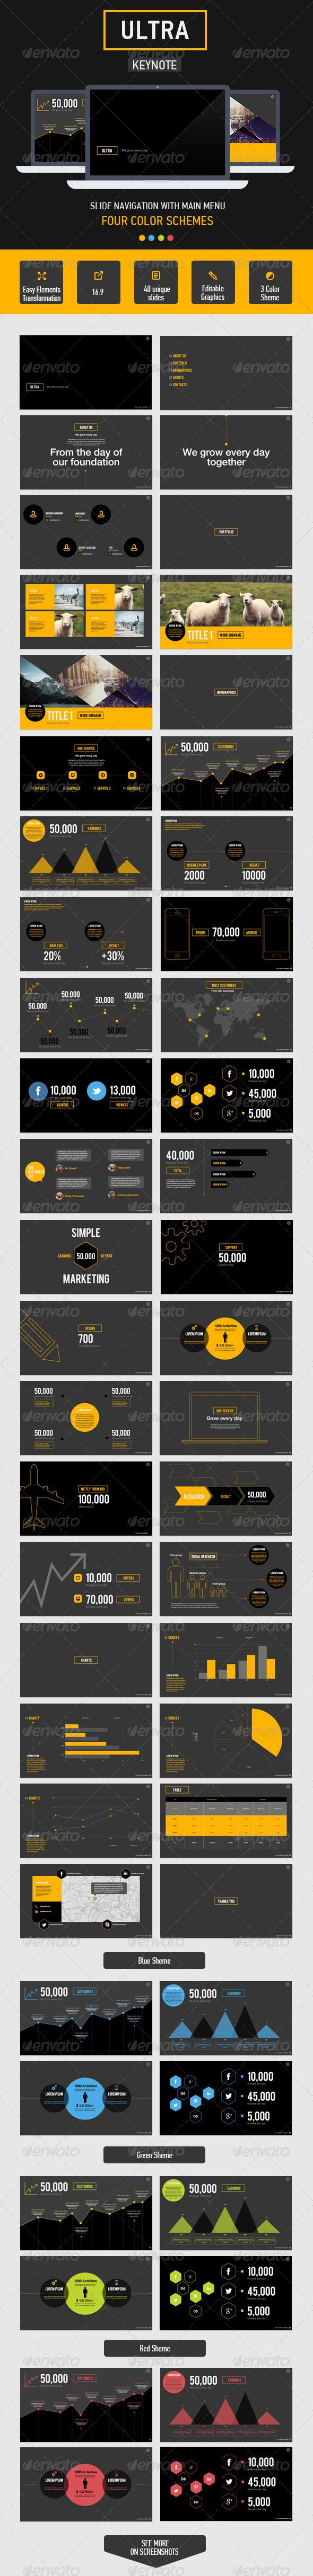 74 best Keynote & Powerpoint Presentation Templates images on ...